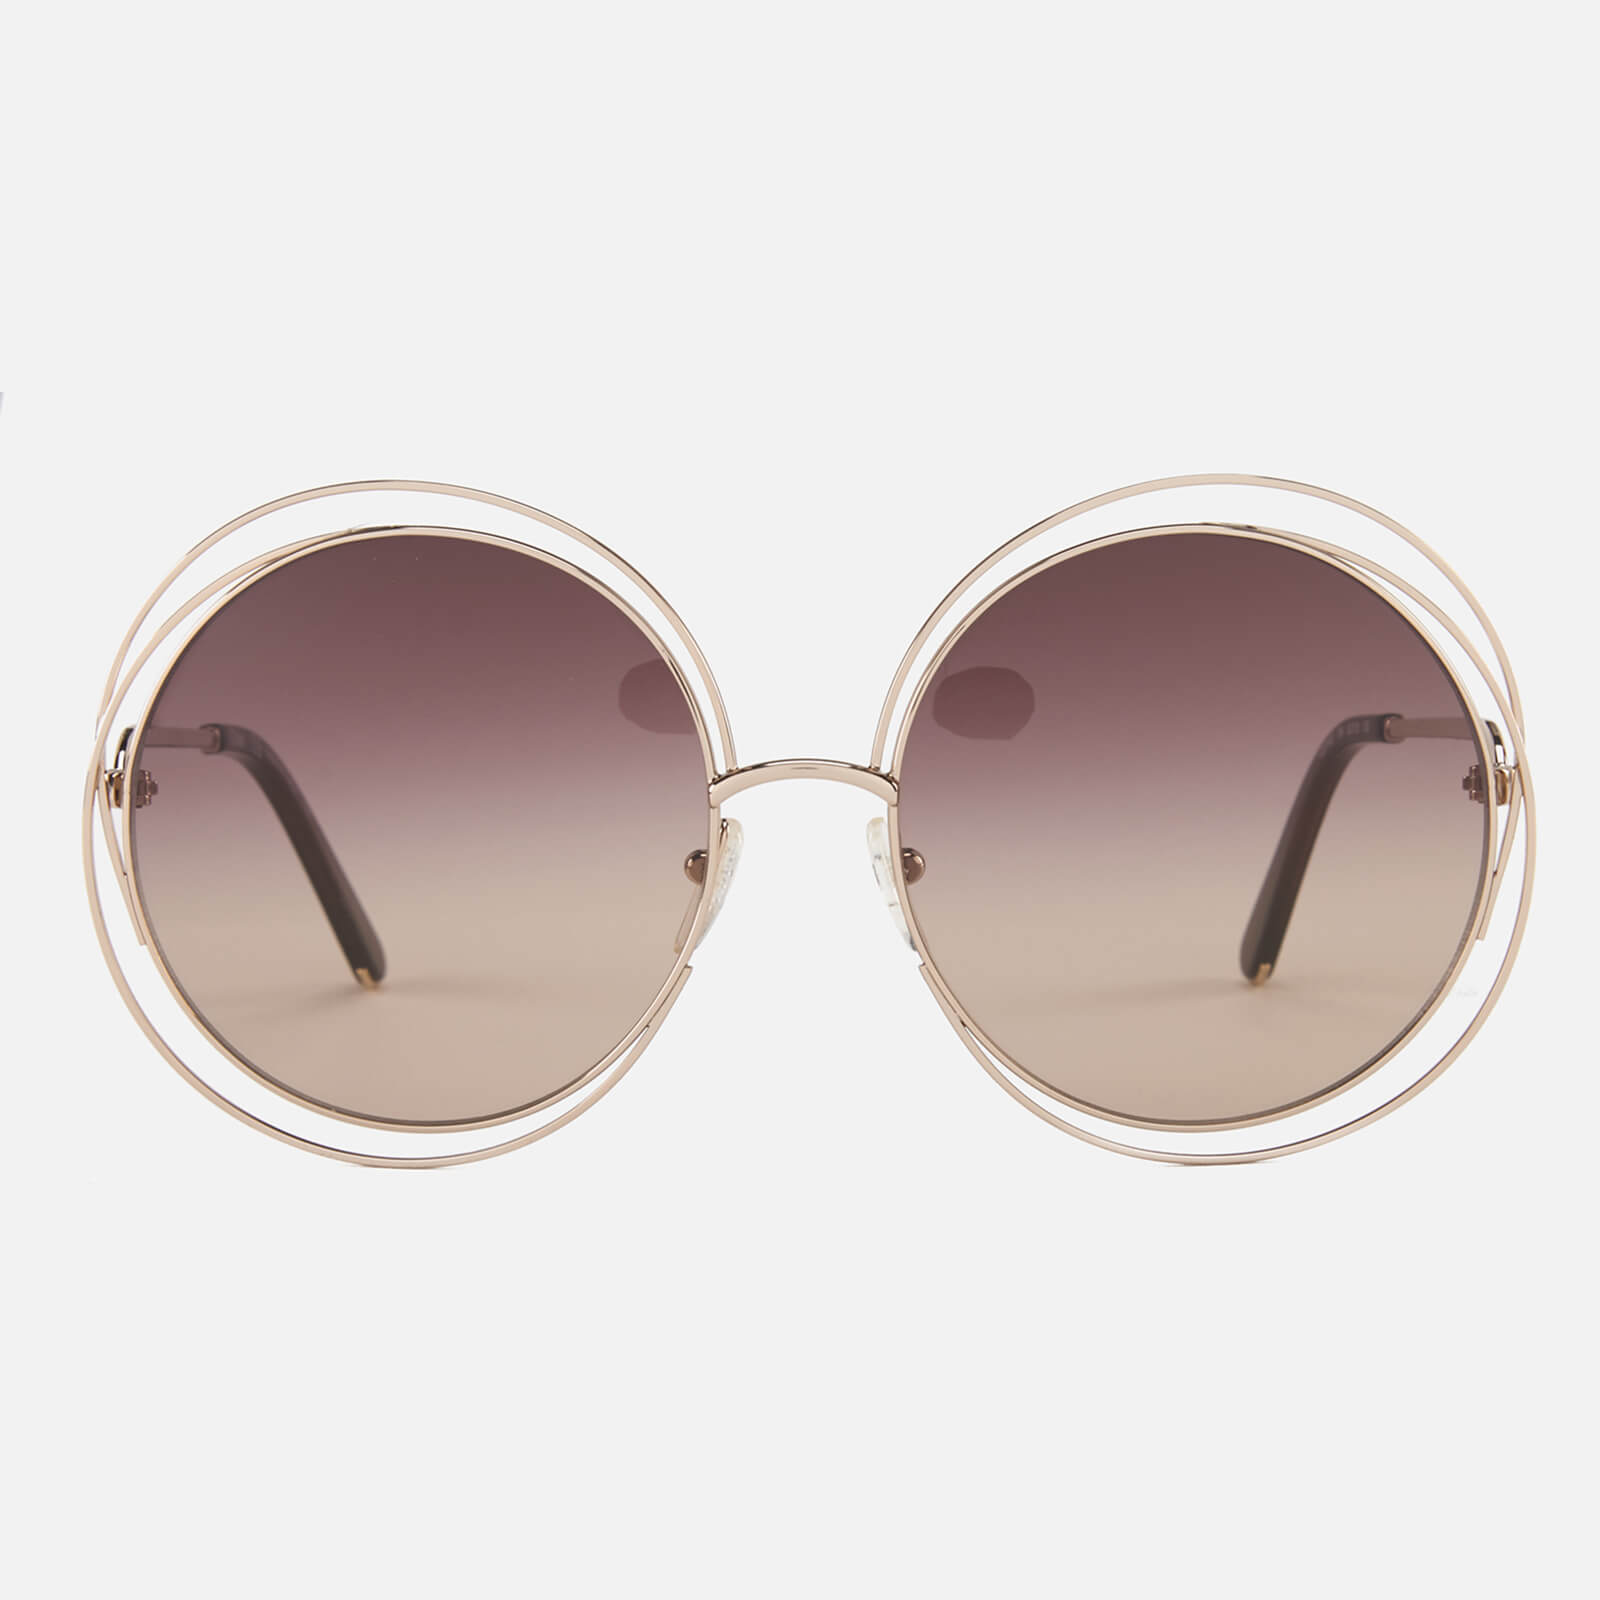 82b4dd3d54b51 Chloe Women s Carlina Sunglasses - Rose Gold Brown - Free UK Delivery over  £50